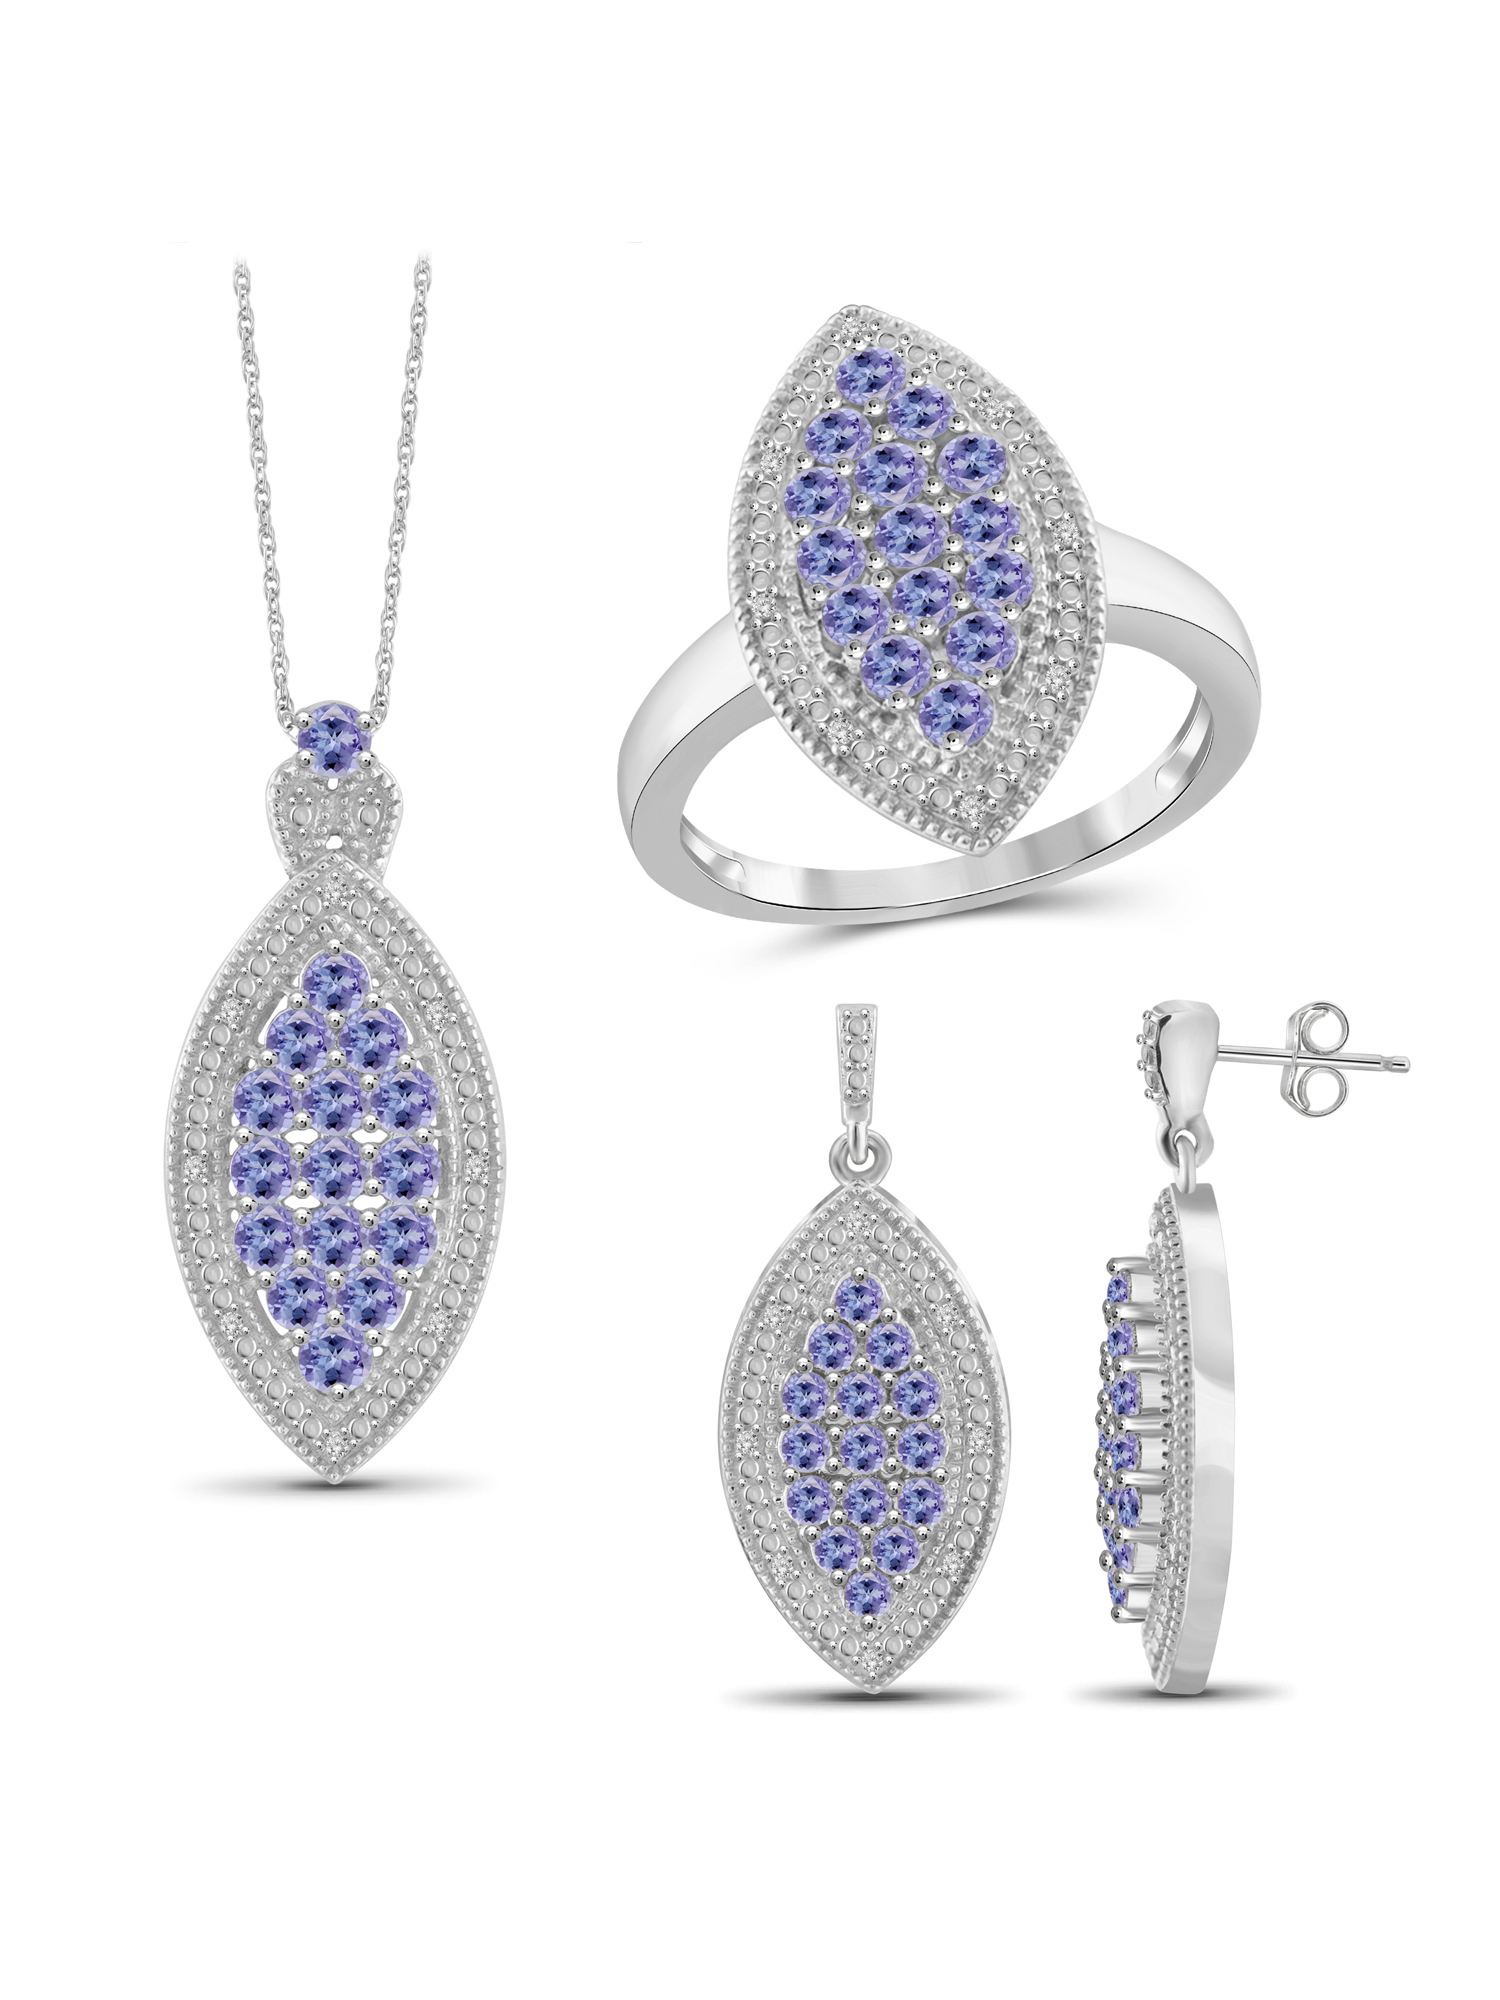 JewelersClub 3.00 Carat T.G.W. Tanzanite And White Diamond Accent Sterling Silver 3-Piece Marquise Jewelry set by JewelersClub